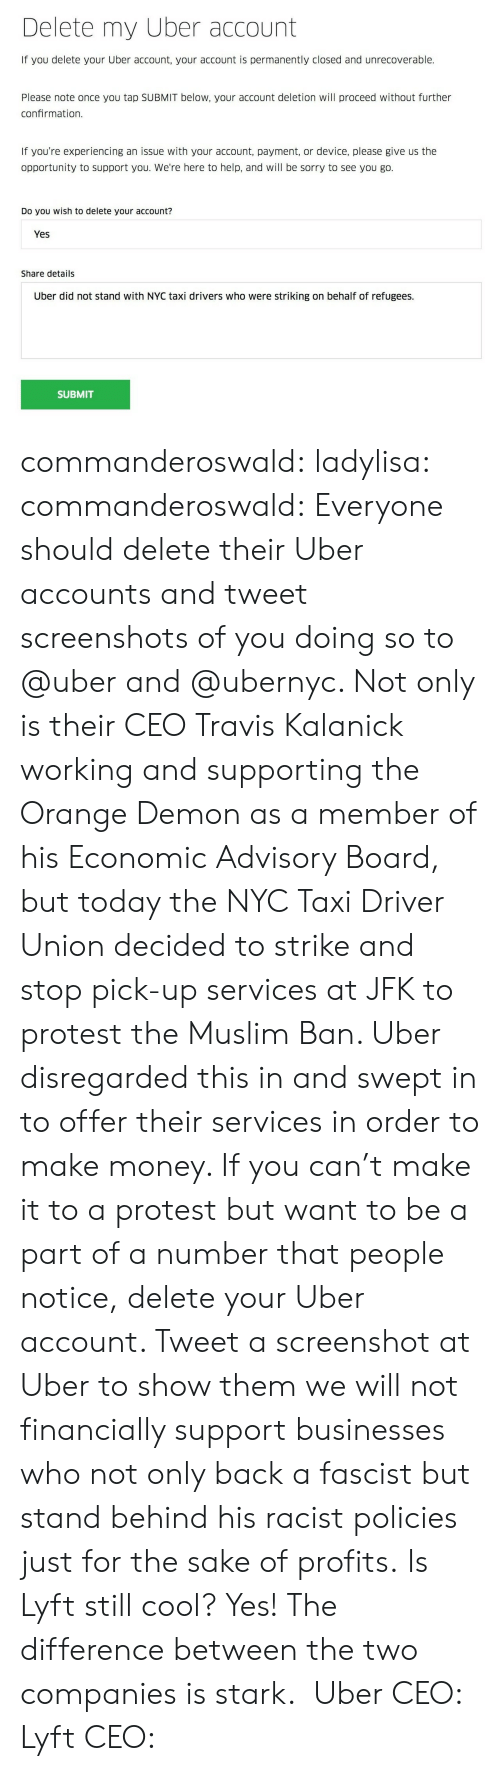 Muslim Ban: Delete my Uber account  If you delete your Uber account, your account is permanently closed and unrecoverable.  Please note once you tap SUBMIT below, your account deletion will proceed without further  confirmation.  If you're experiencing an issue with your account, payment, or device, please give us the  opportunity to support you. We're here to help, and will be sorry to see you go.  Do you wish to delete your account?  Yes  Share details  Uber did not stand with NYC taxi drivers who were striking on behalf of refugees.  SUBMIT commanderoswald:  ladylisa:  commanderoswald:   Everyone should delete their Uber accounts and tweet screenshots of you doing so to @uber and @ubernyc. Not only is their CEO Travis Kalanick working and supporting the Orange Demon as a member of his Economic Advisory Board, but today the NYC Taxi Driver Union decided to strike and stop pick-up services at JFK to protest the Muslim Ban. Uber disregarded this in and swept in to offer their services in order to make money.   If you can't make it to a protest but want to be a part of a number that people notice, delete your Uber account. Tweet a screenshot at Uber to show them we will not financially support businesses who not only back a fascist but stand behind his racist policies just for the sake of profits.   Is Lyft still cool?  Yes! The difference between the two companies is stark. Uber CEO: Lyft CEO: